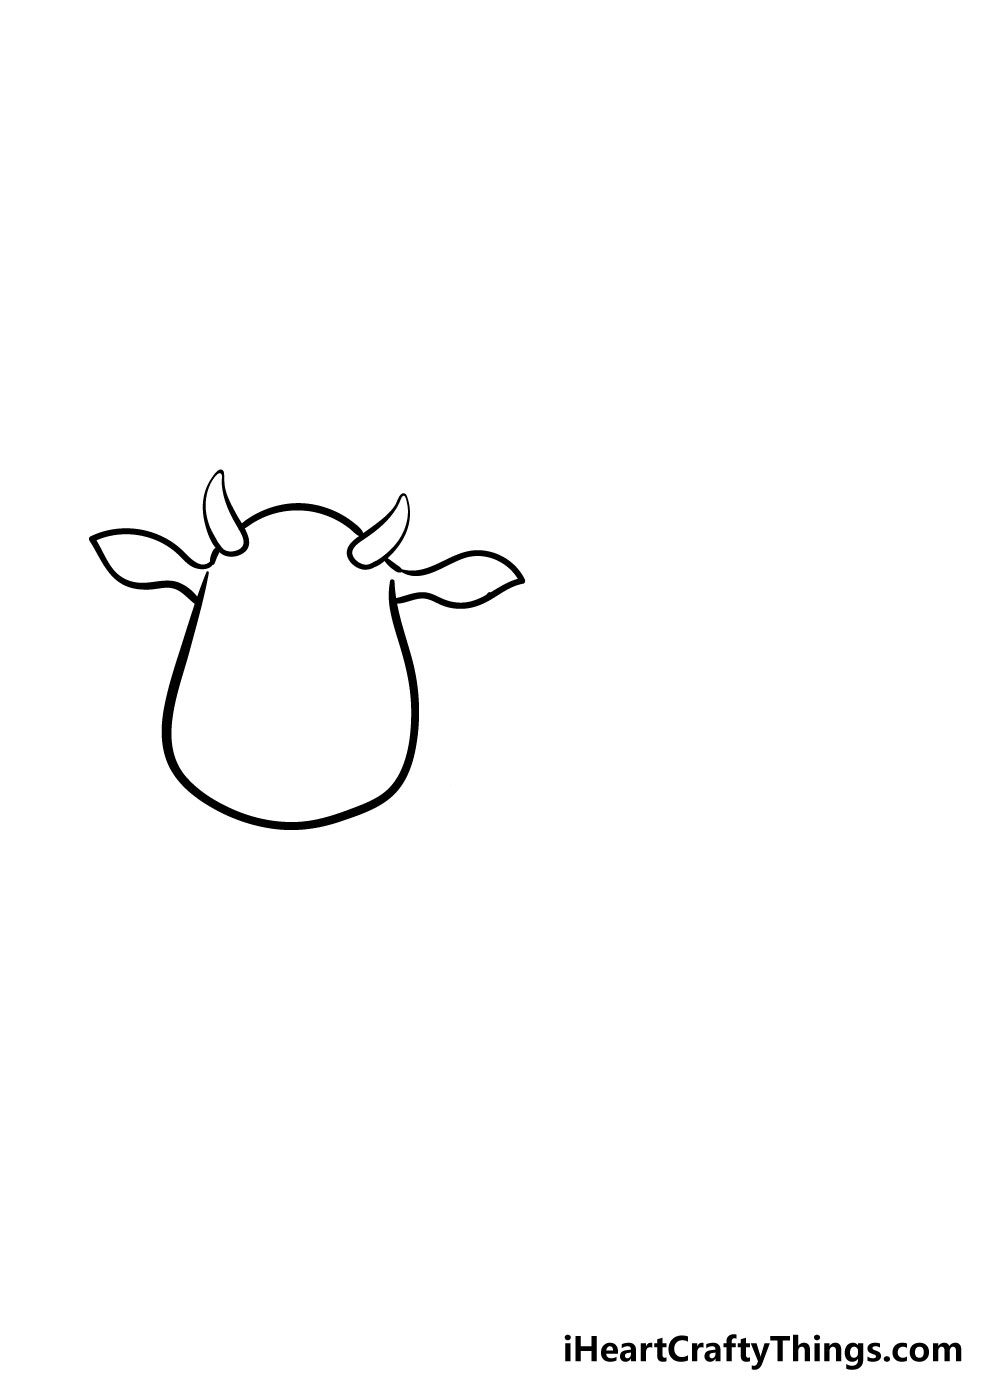 cow drawing step 3